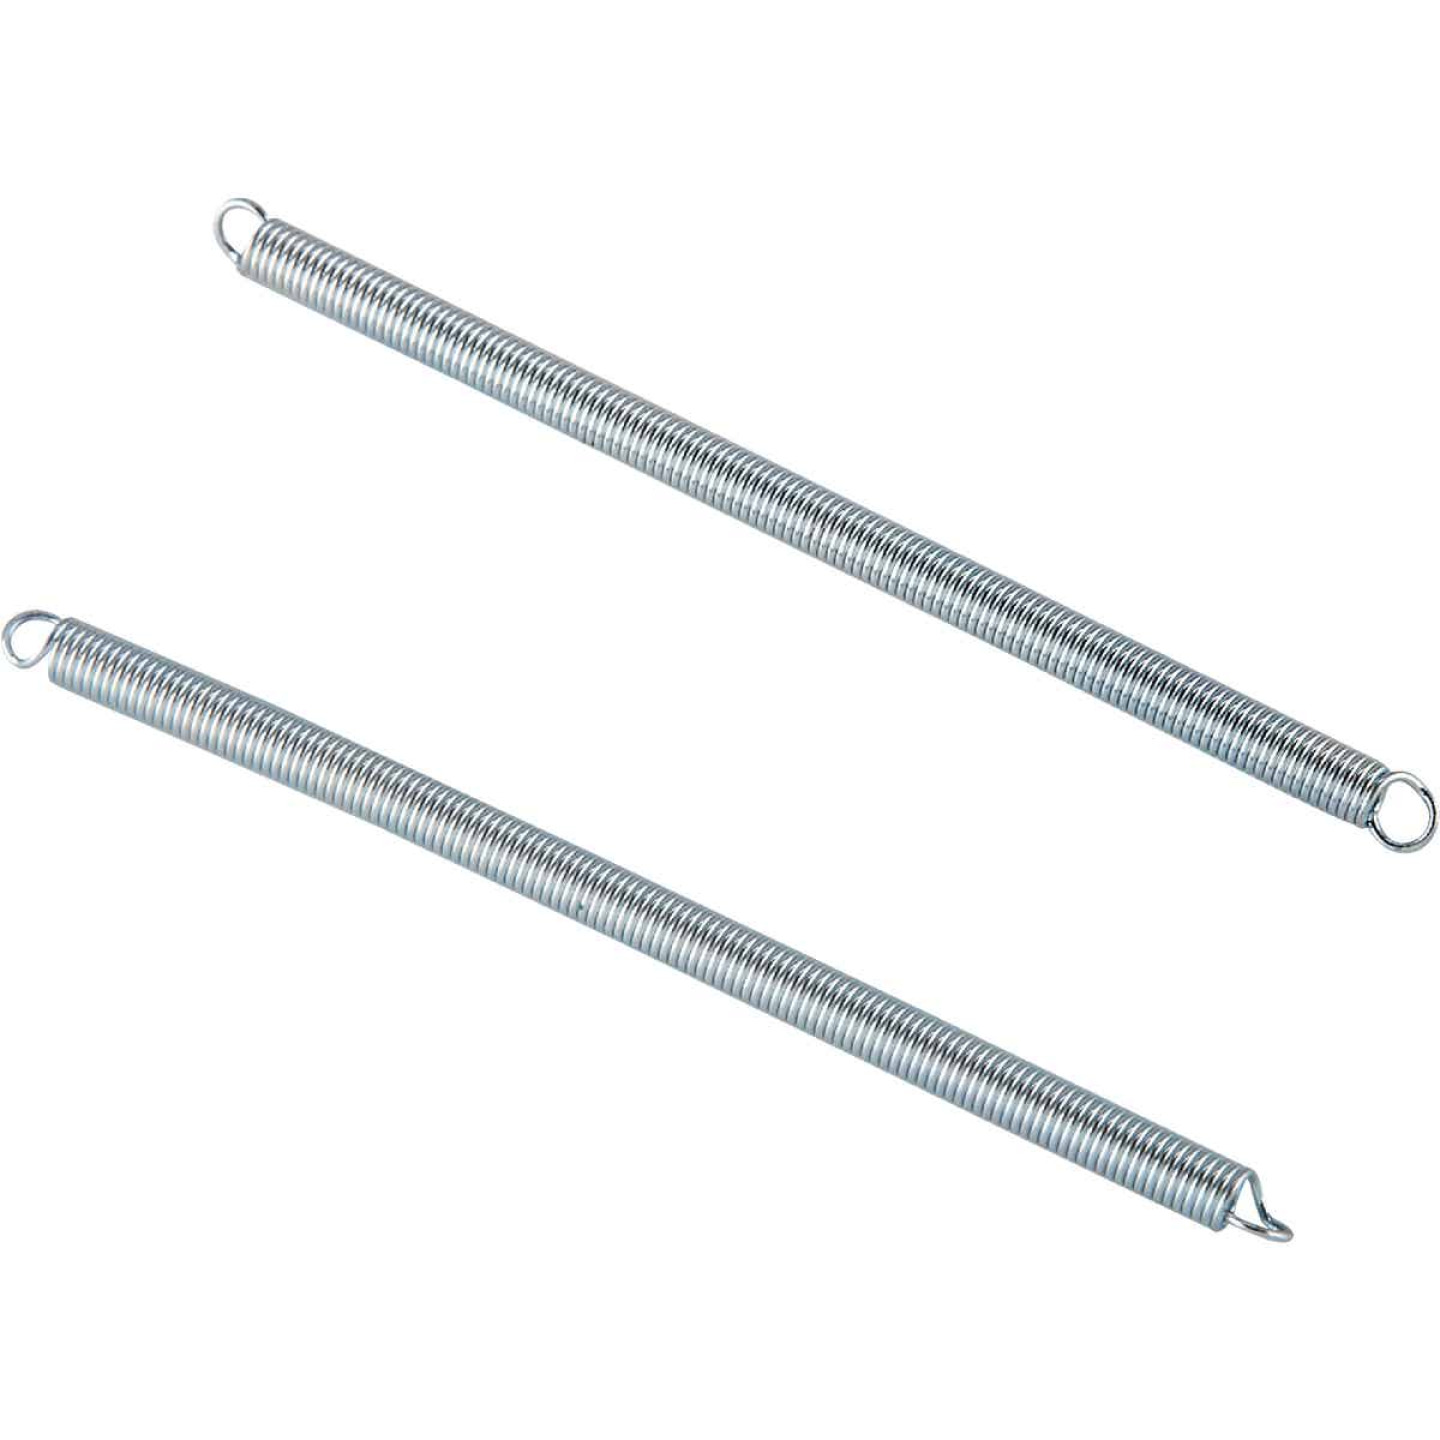 Century Spring 5-1/2 In. x 1-1/16 In. Extension Spring (1 Count) Image 1